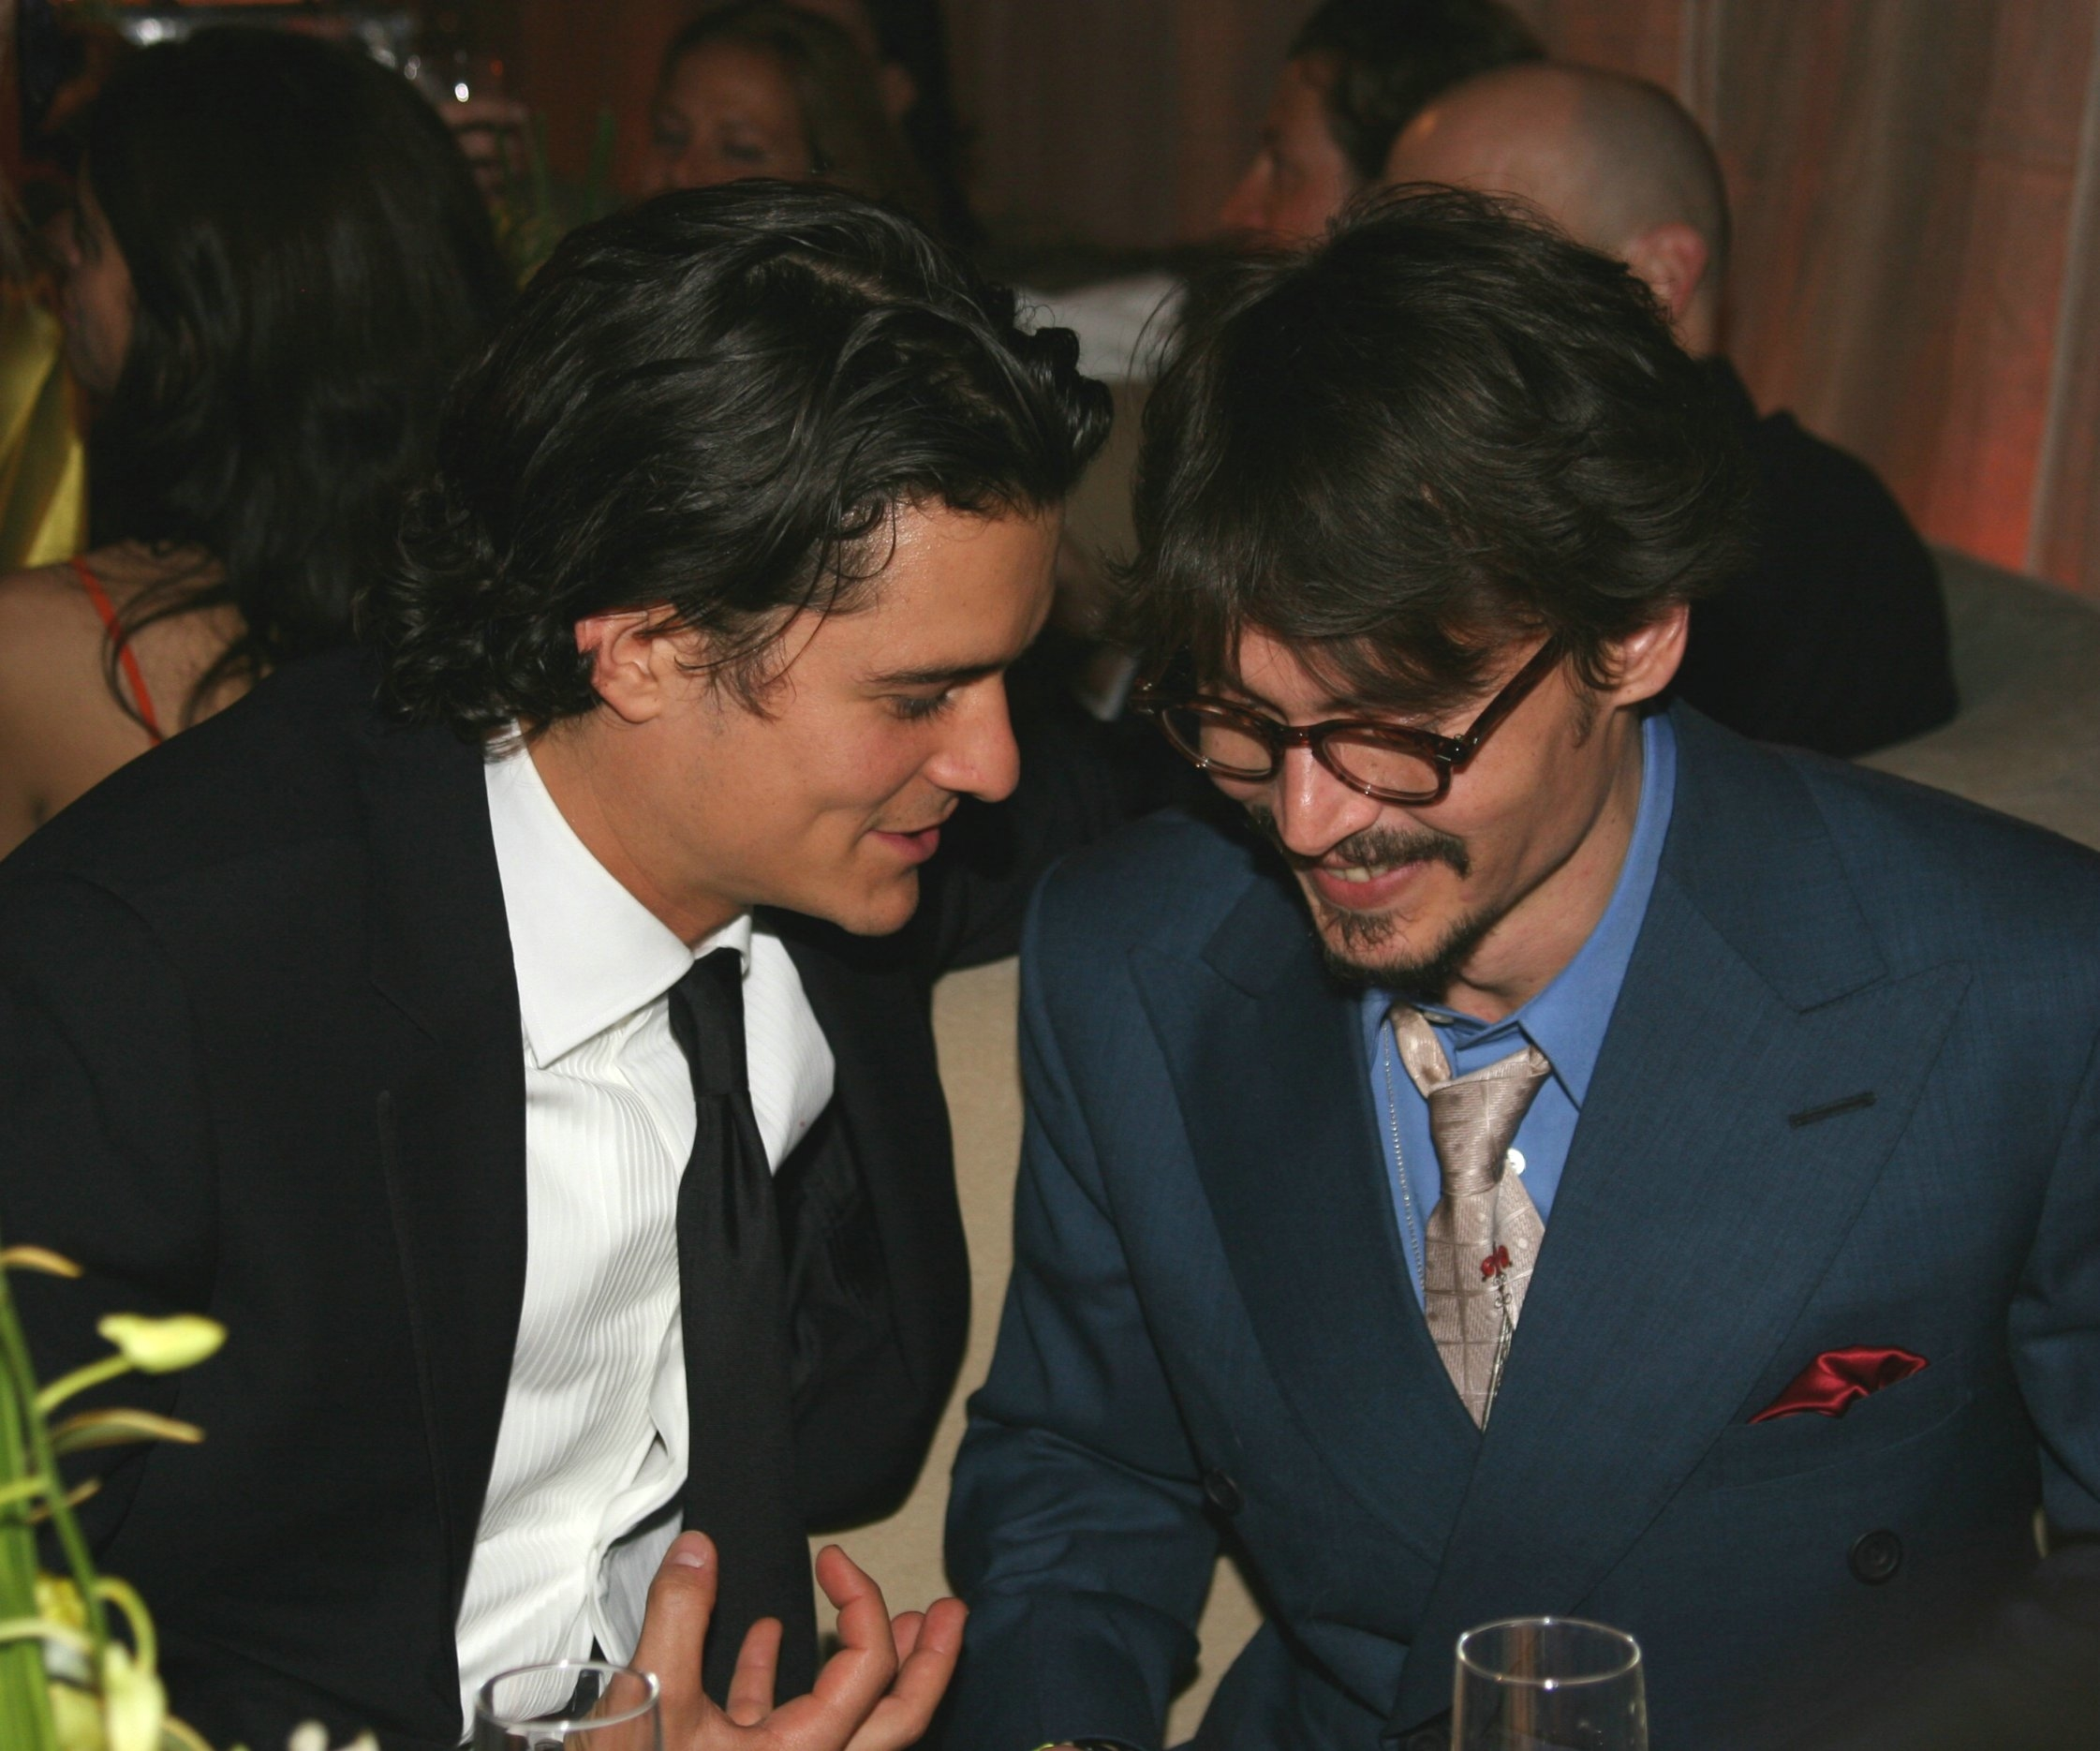 Pictures of johnny depp and orlando bloom 500 High Heels Pictures HD Download Free Images on Unsplash